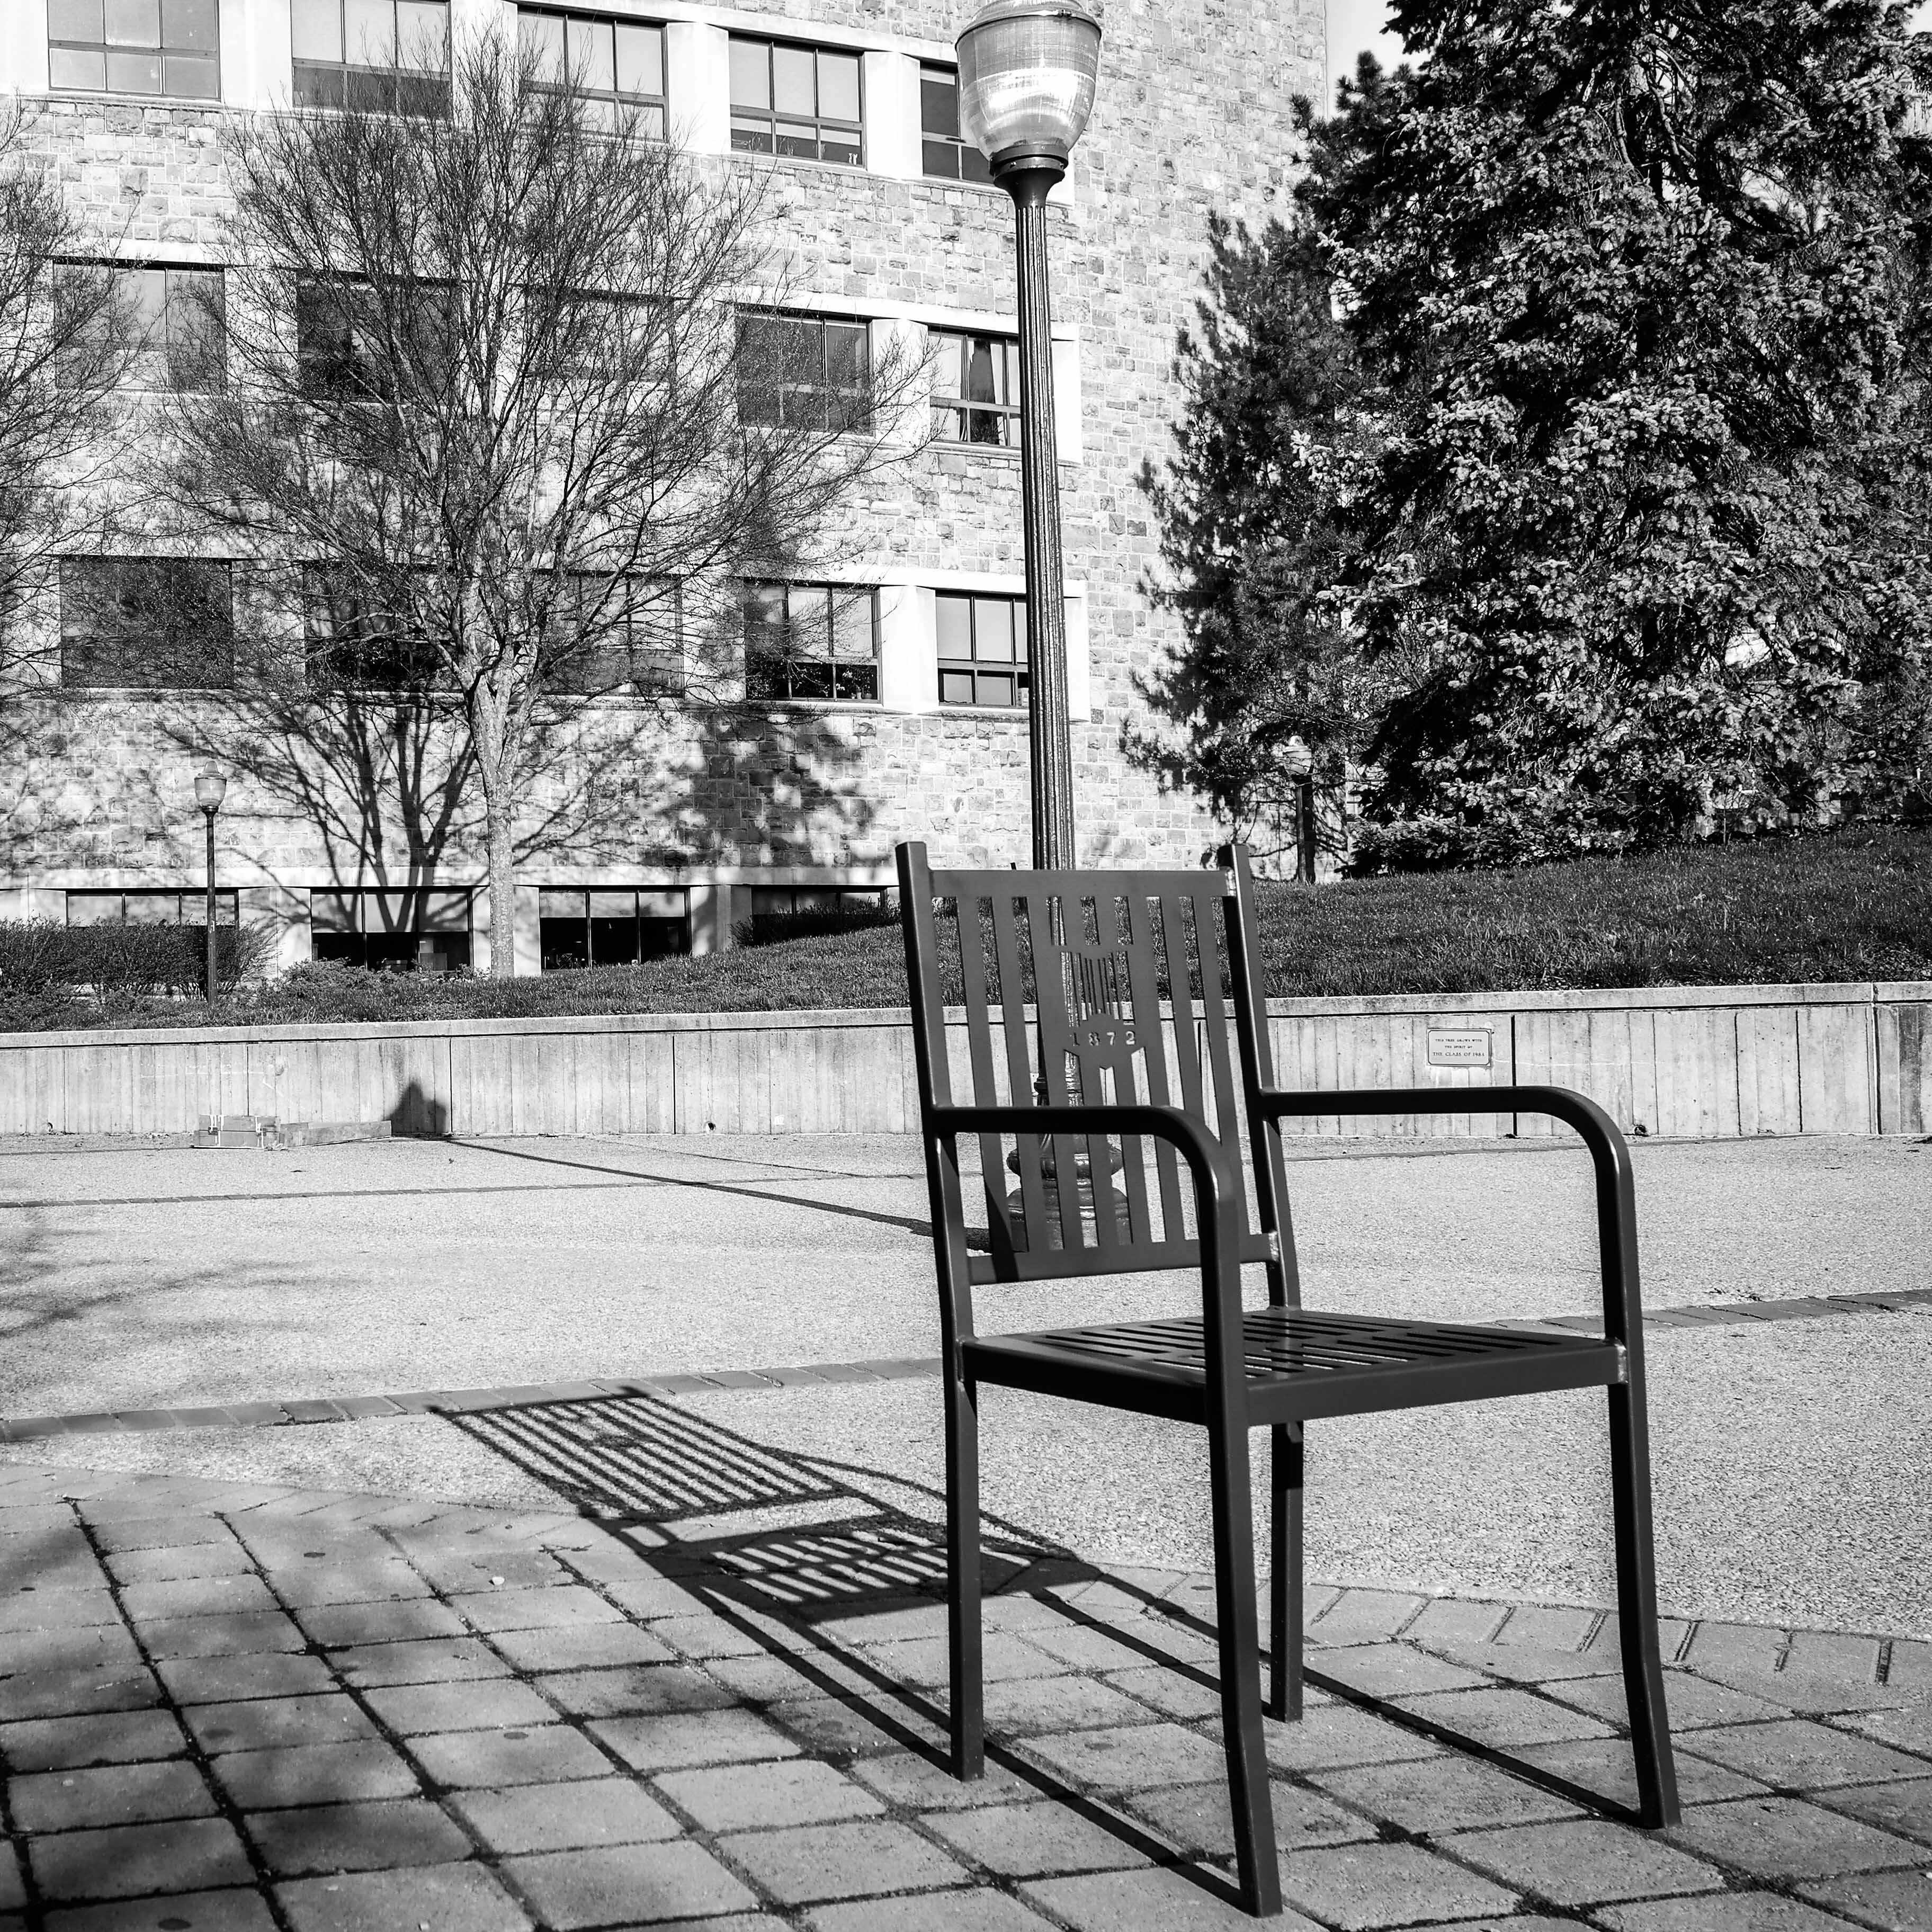 A black and white picture of an empty chair